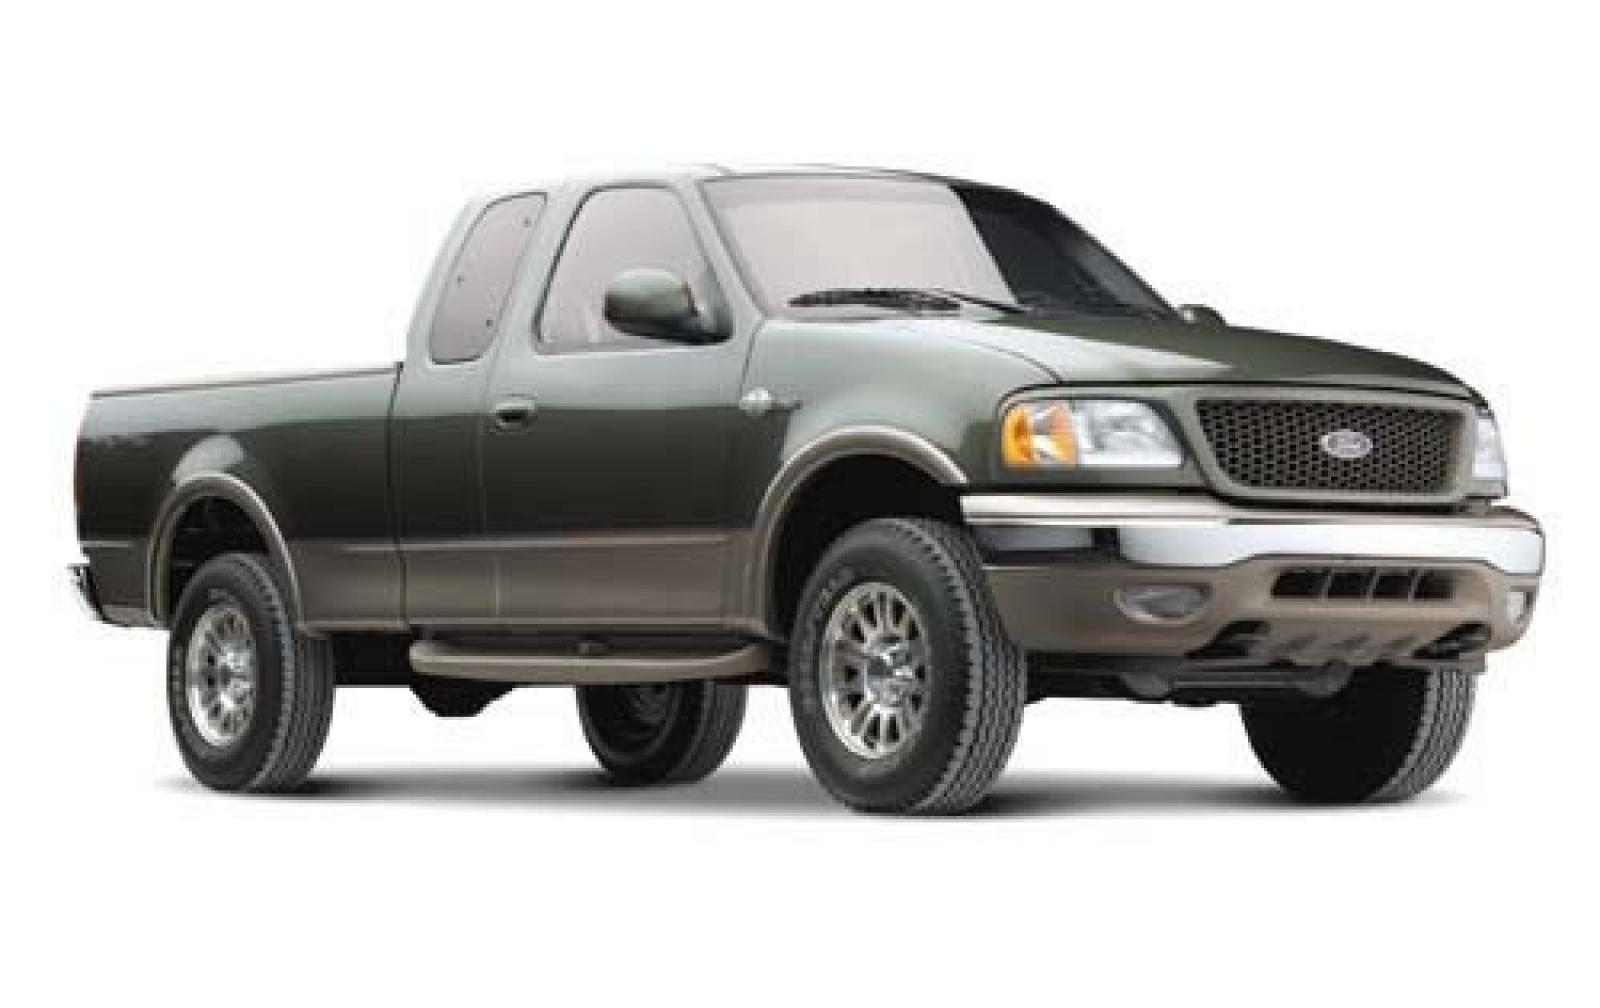 2004 Ford F 150 Heritage Information And Photos Zombiedrive Xl Supercab 1 800 1024 1280 1600 Origin